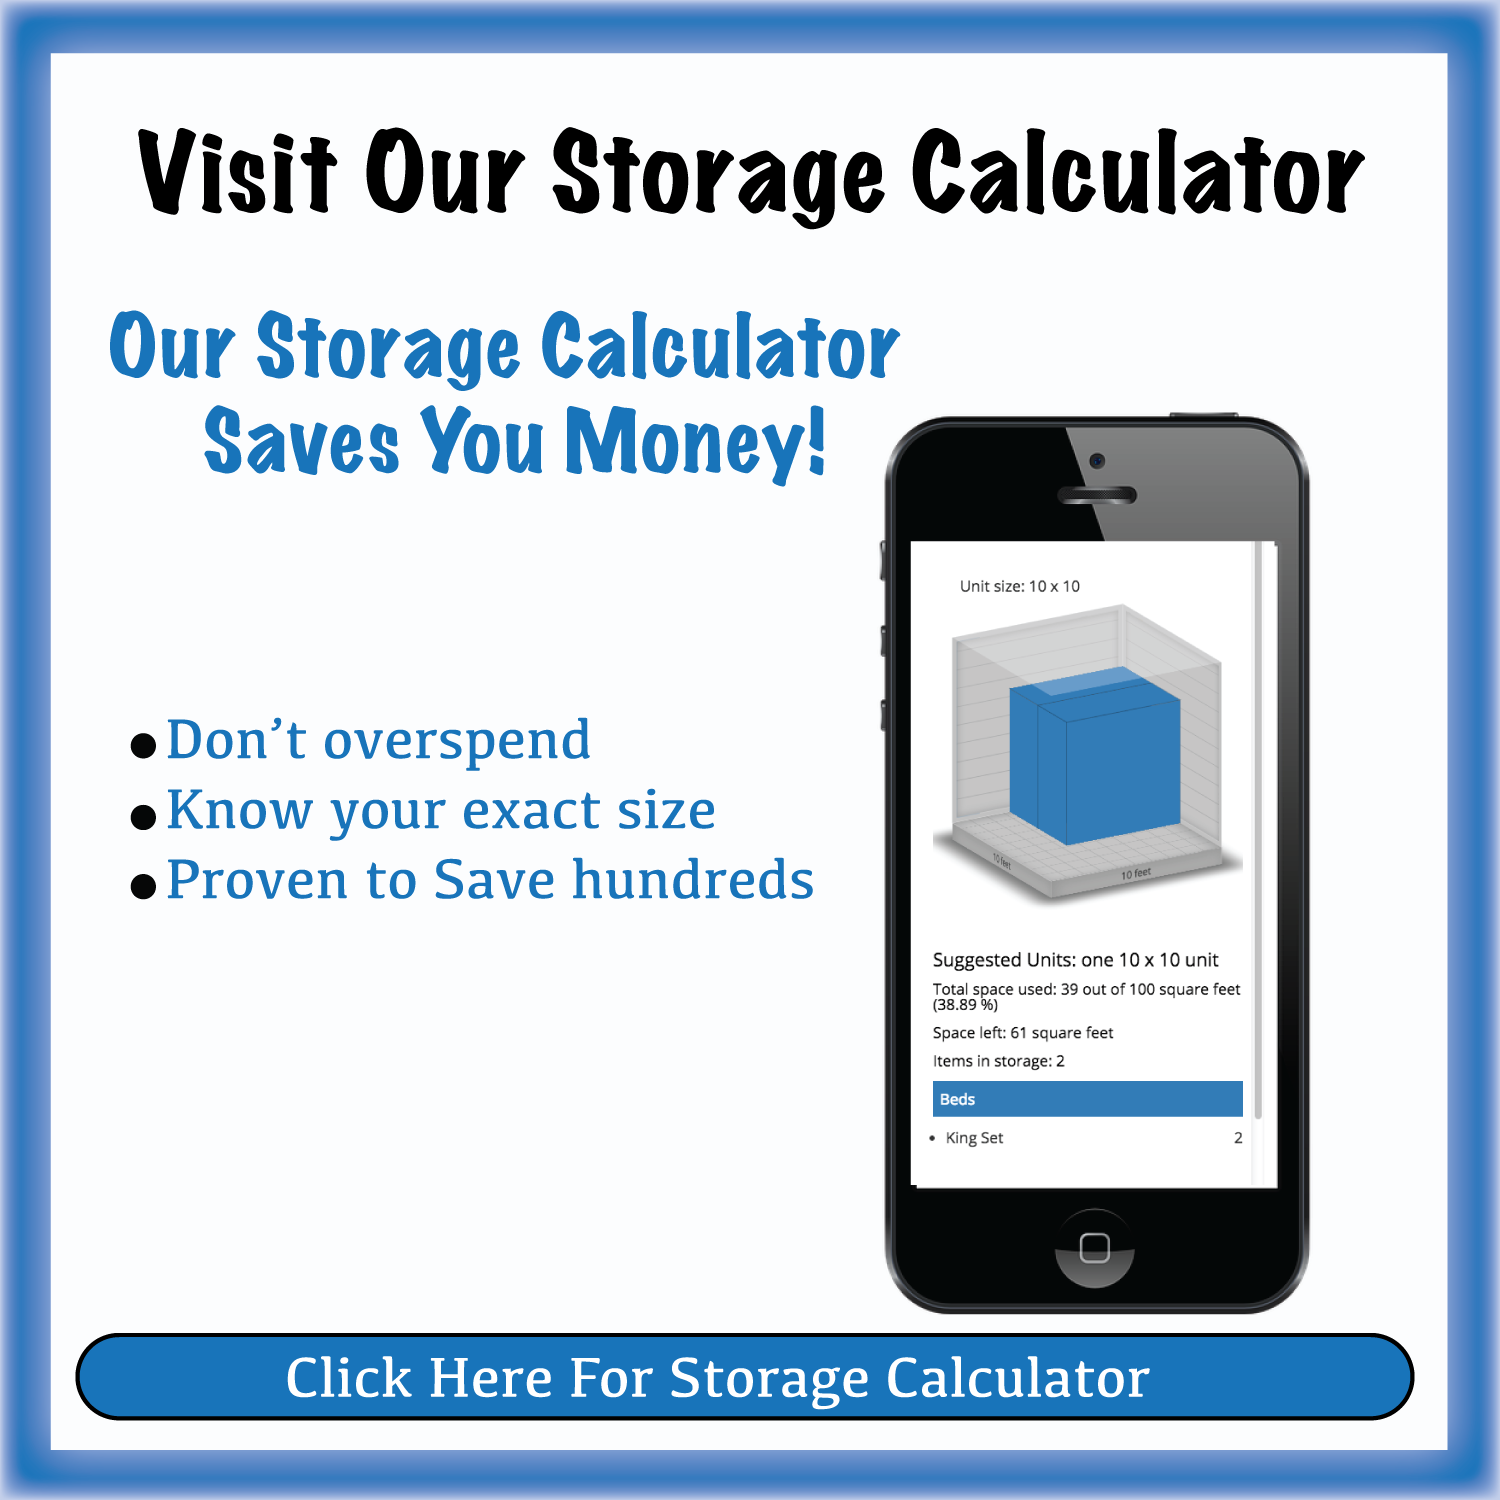 Self Storage Calculator to find out how much a storage unit costs and how big I should rent